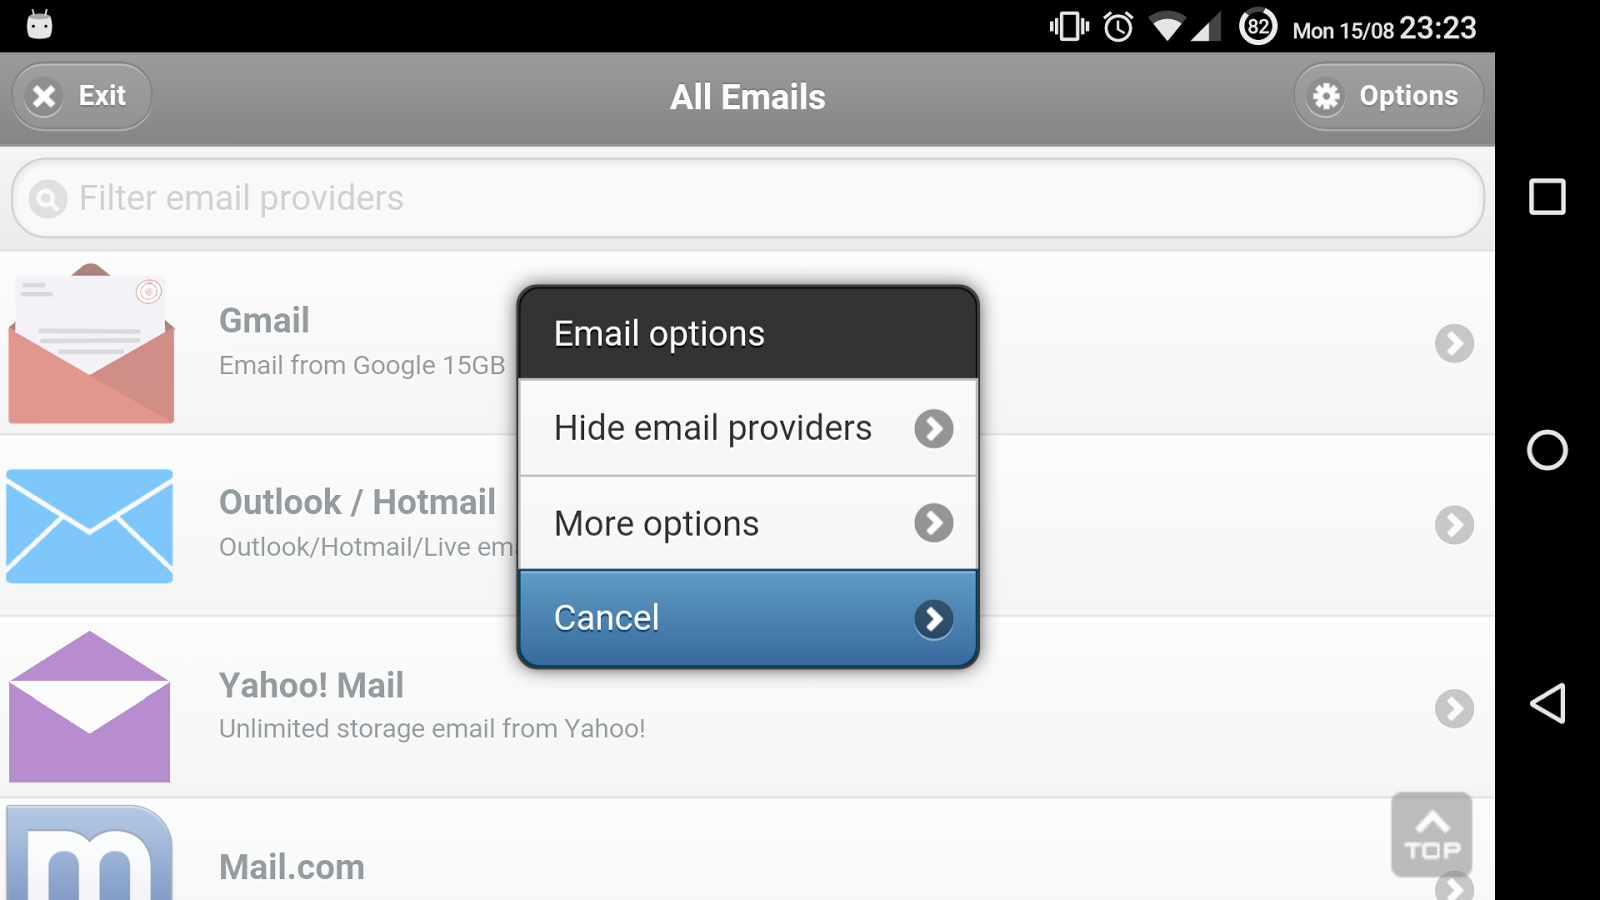 Which email provider should I switch to?